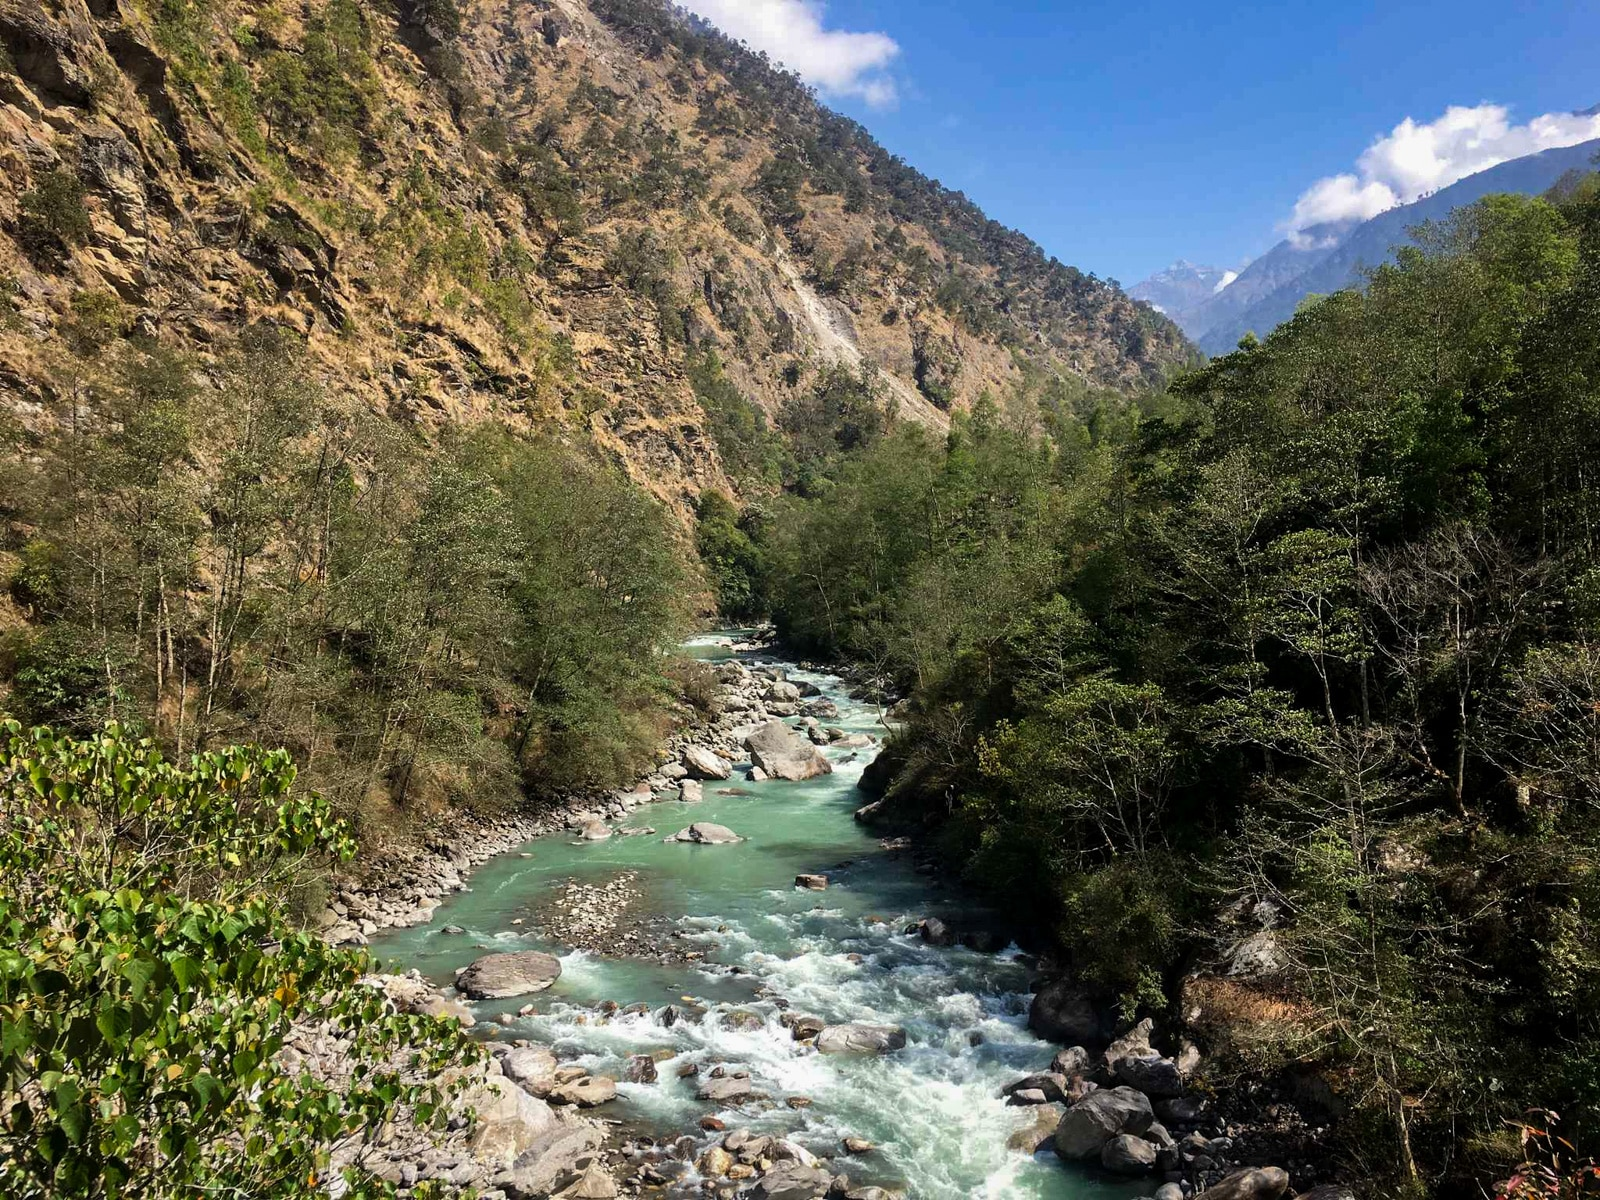 River flowing through a green mountain valley on the Jiri - Cheplung trail in Nepal